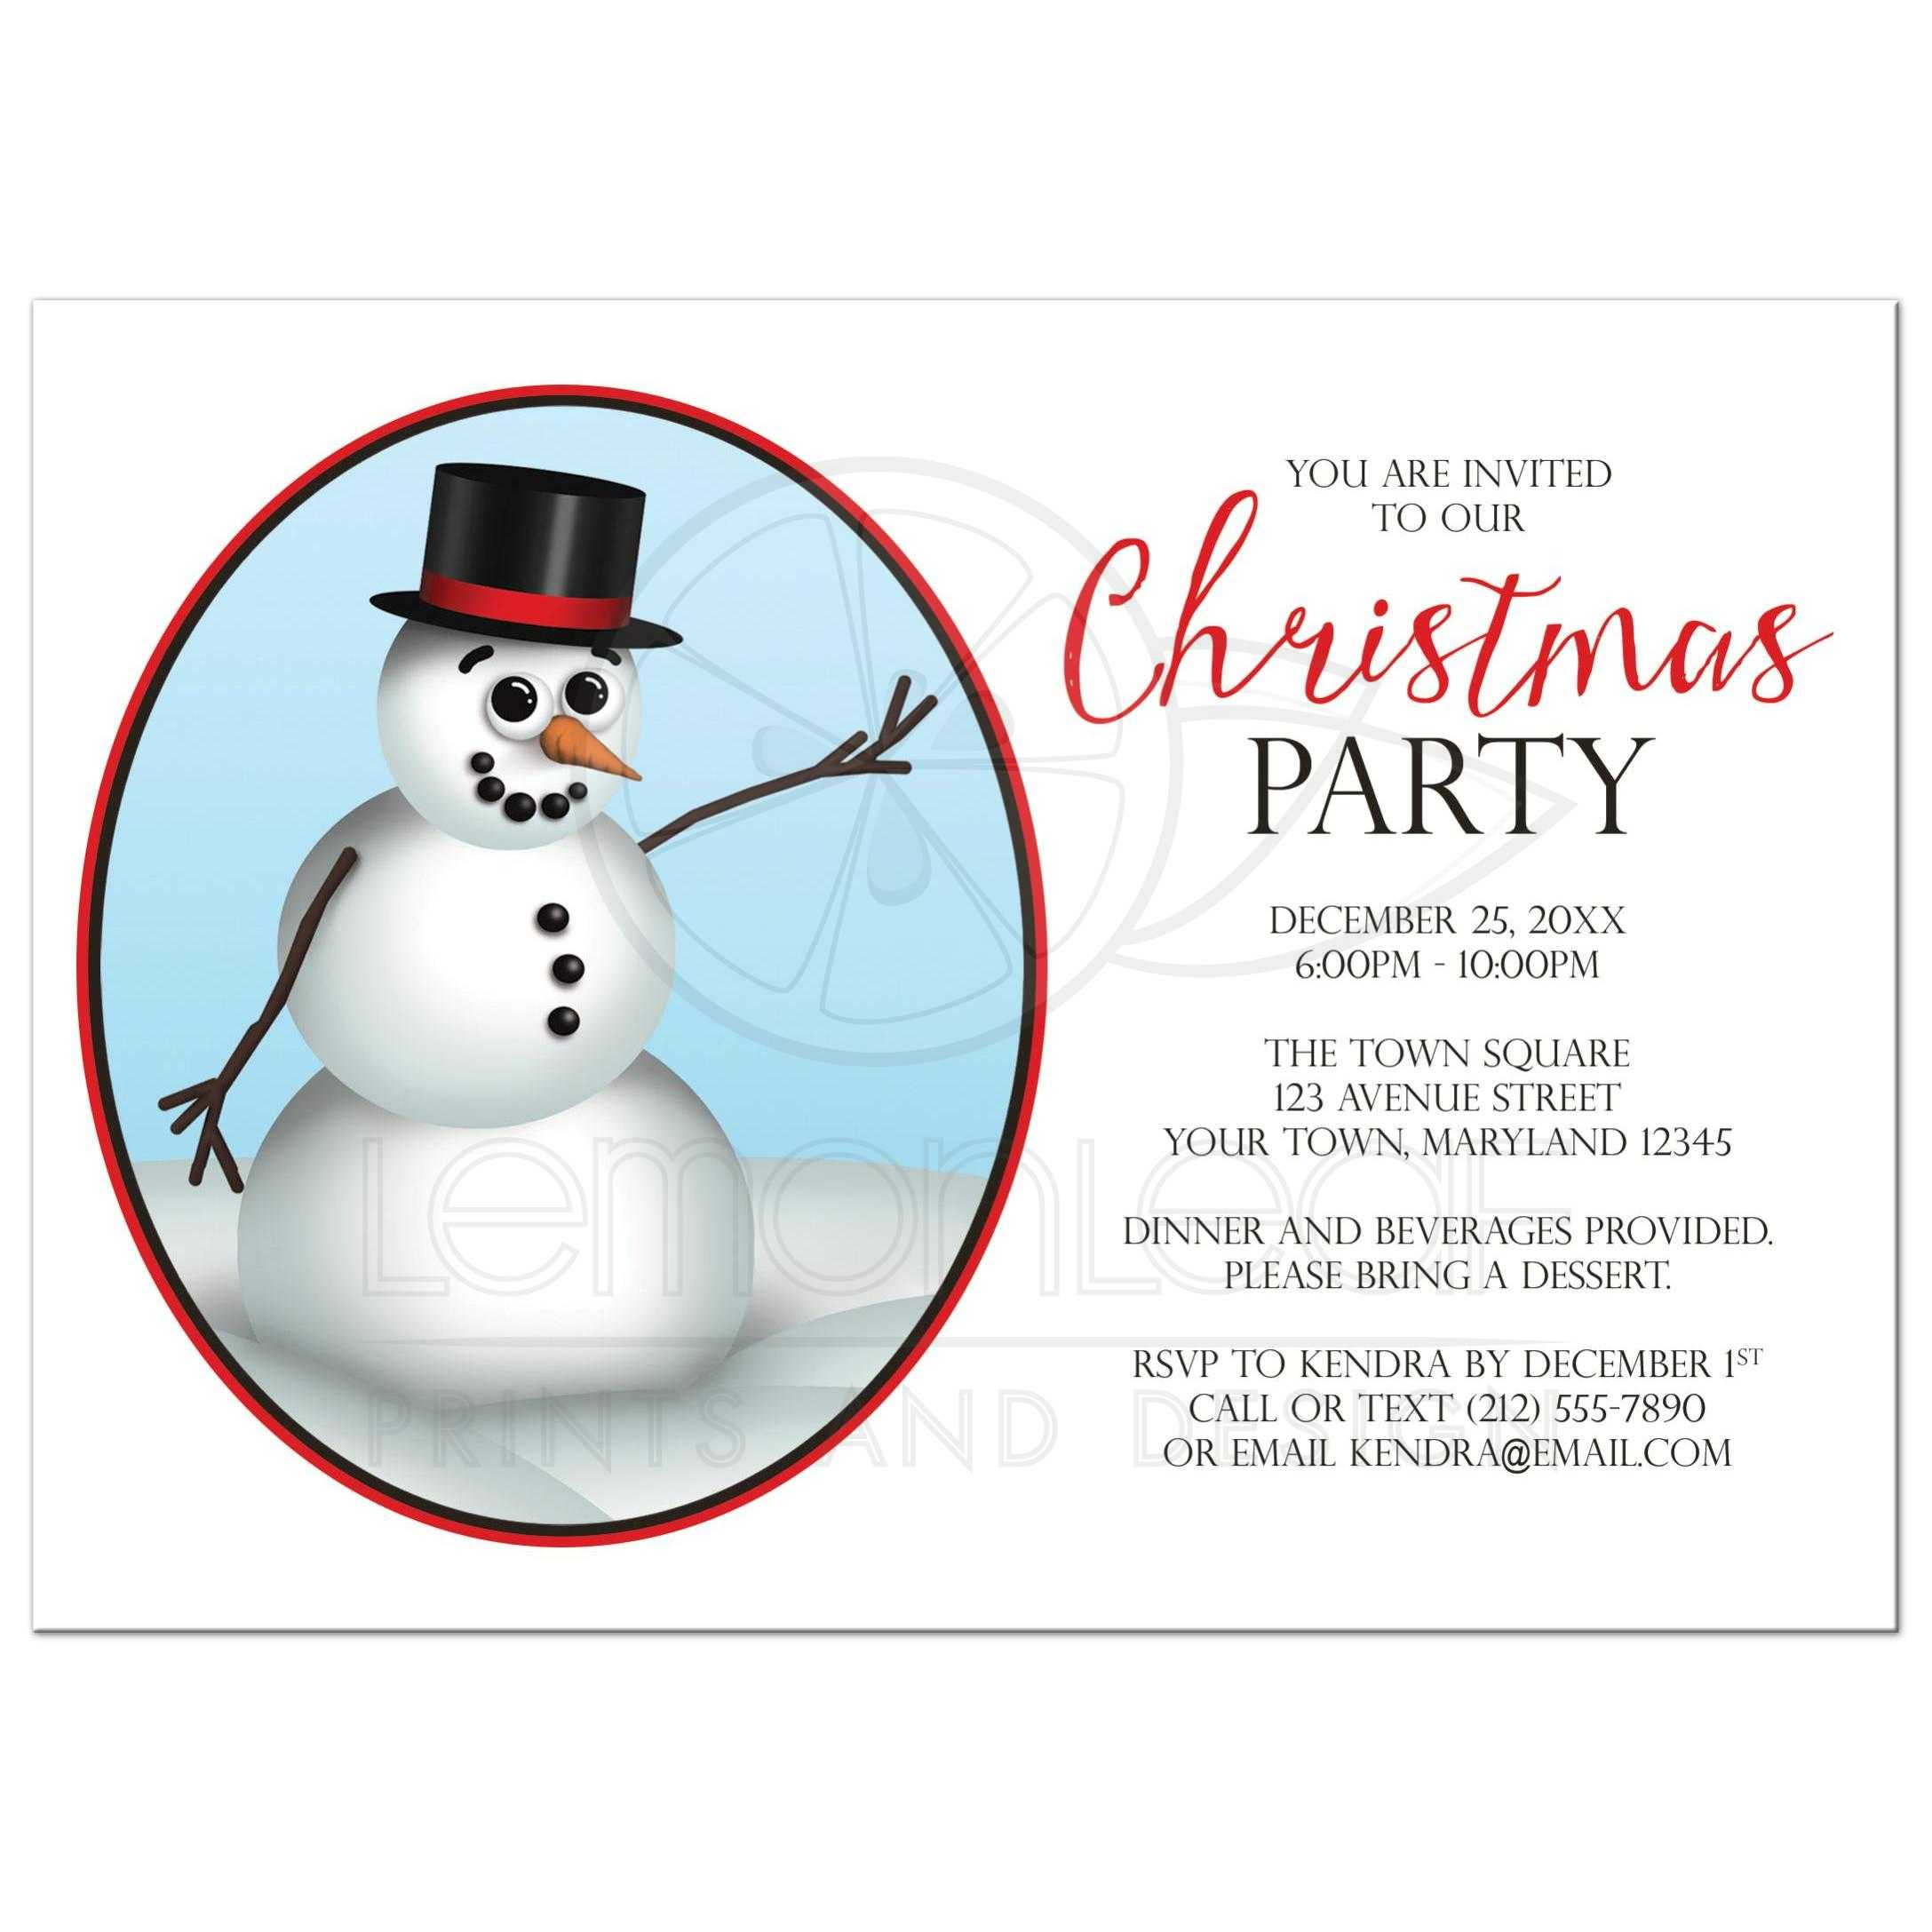 christmas party invitations cute classy snowman with top hat